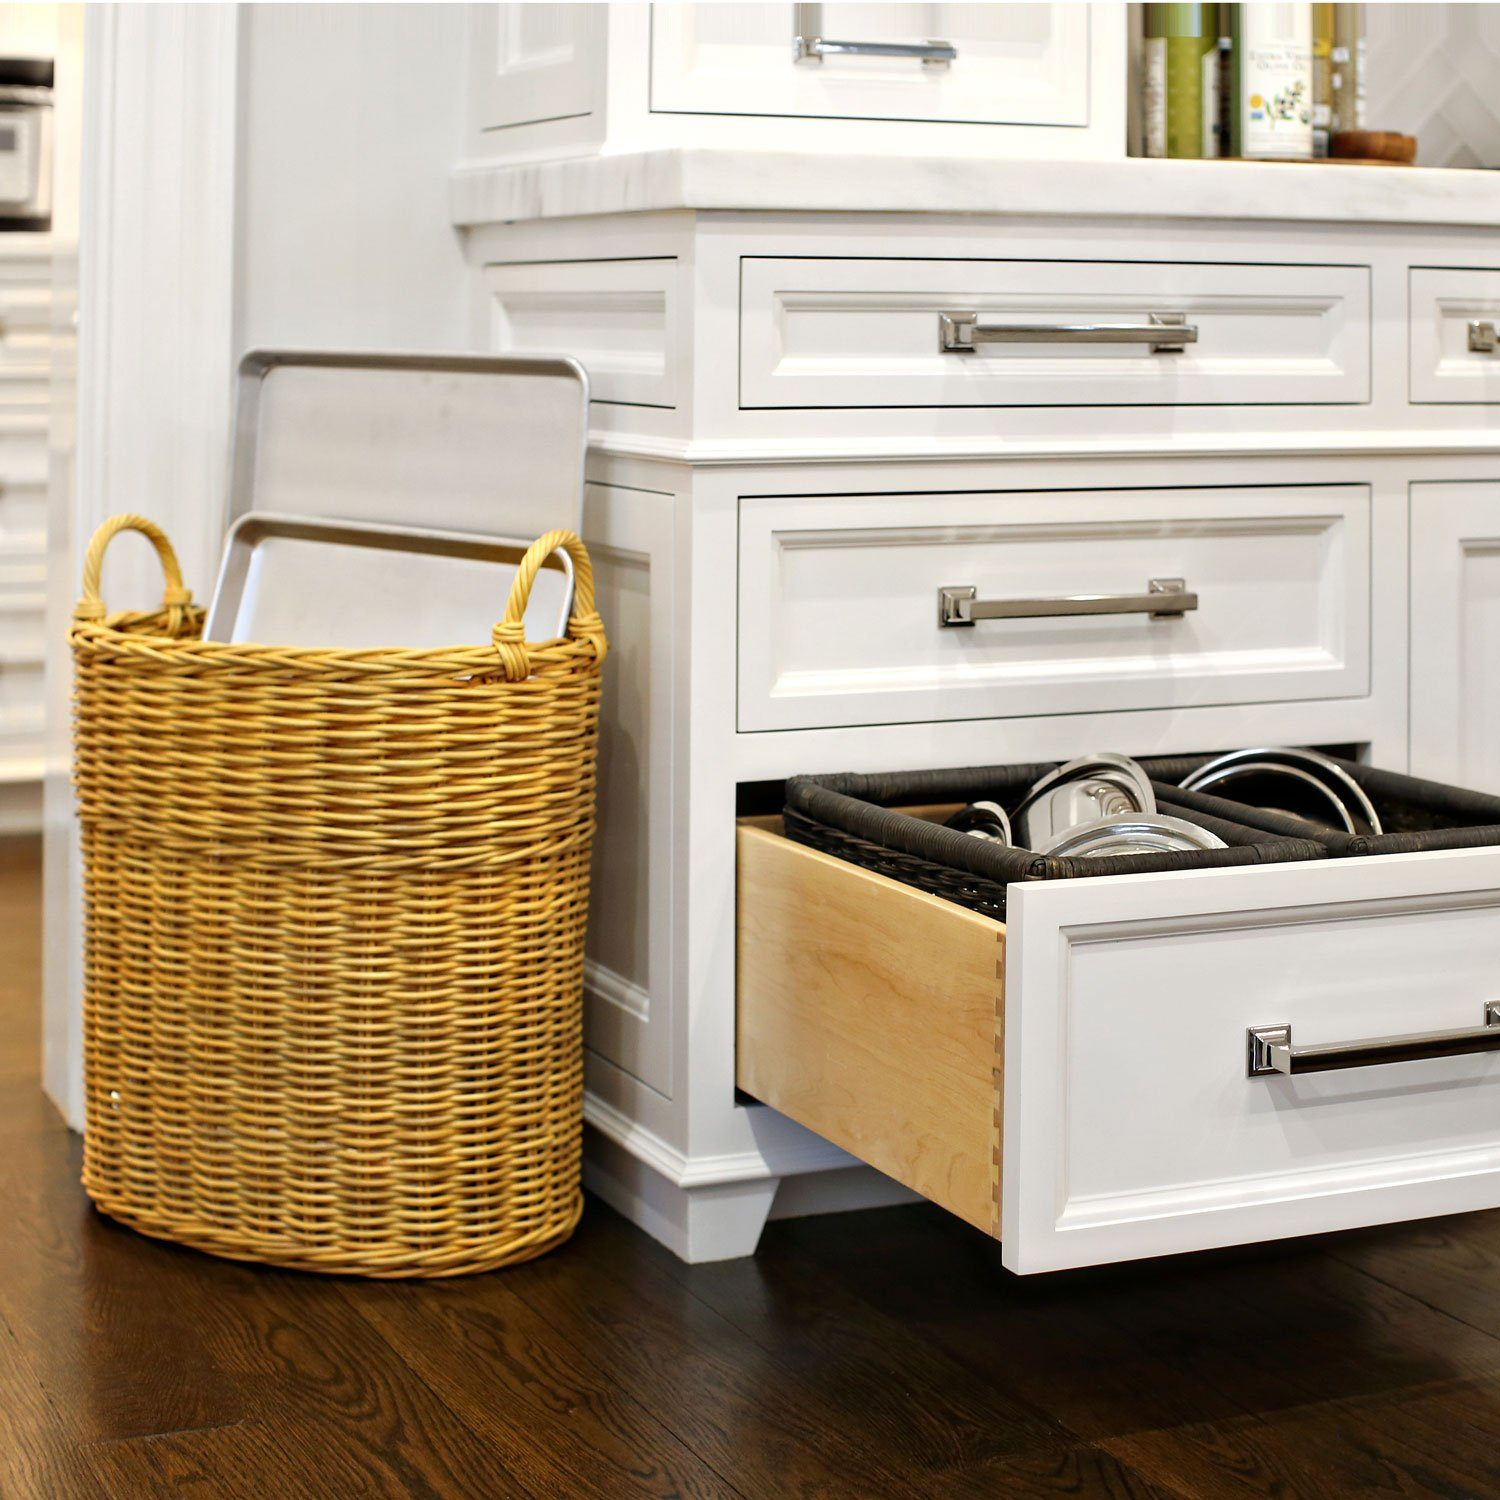 Wicker Kitchen Cabinet Basket The Basket Lady